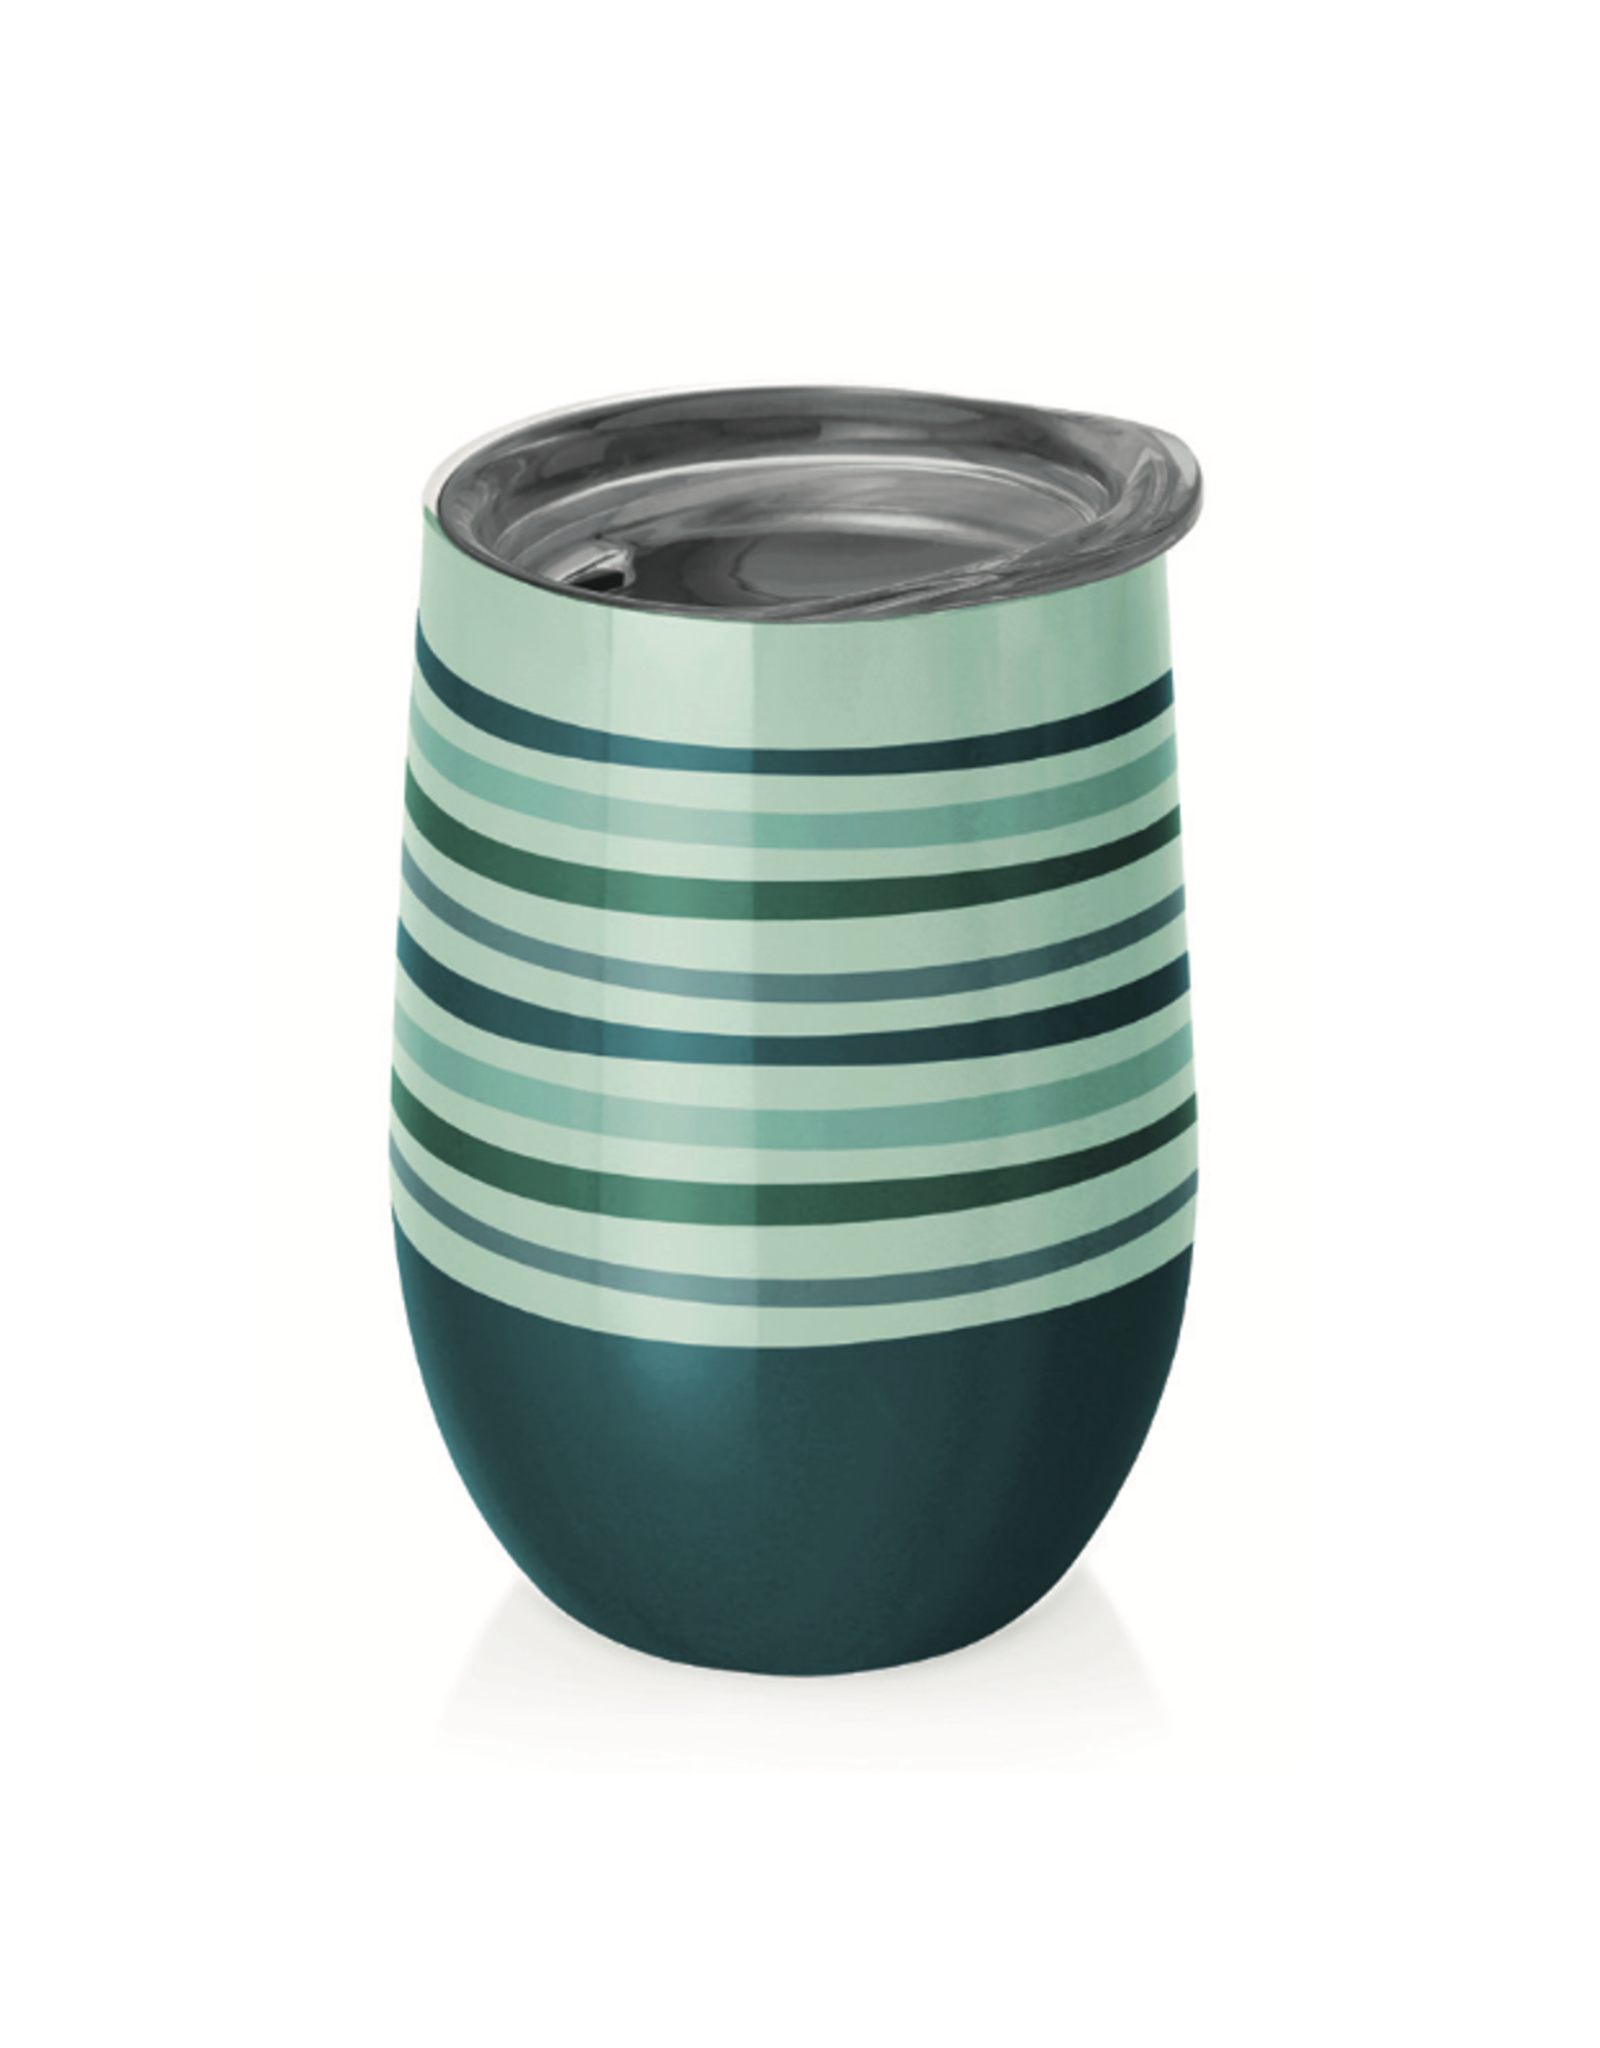 cup with green and blue stripes